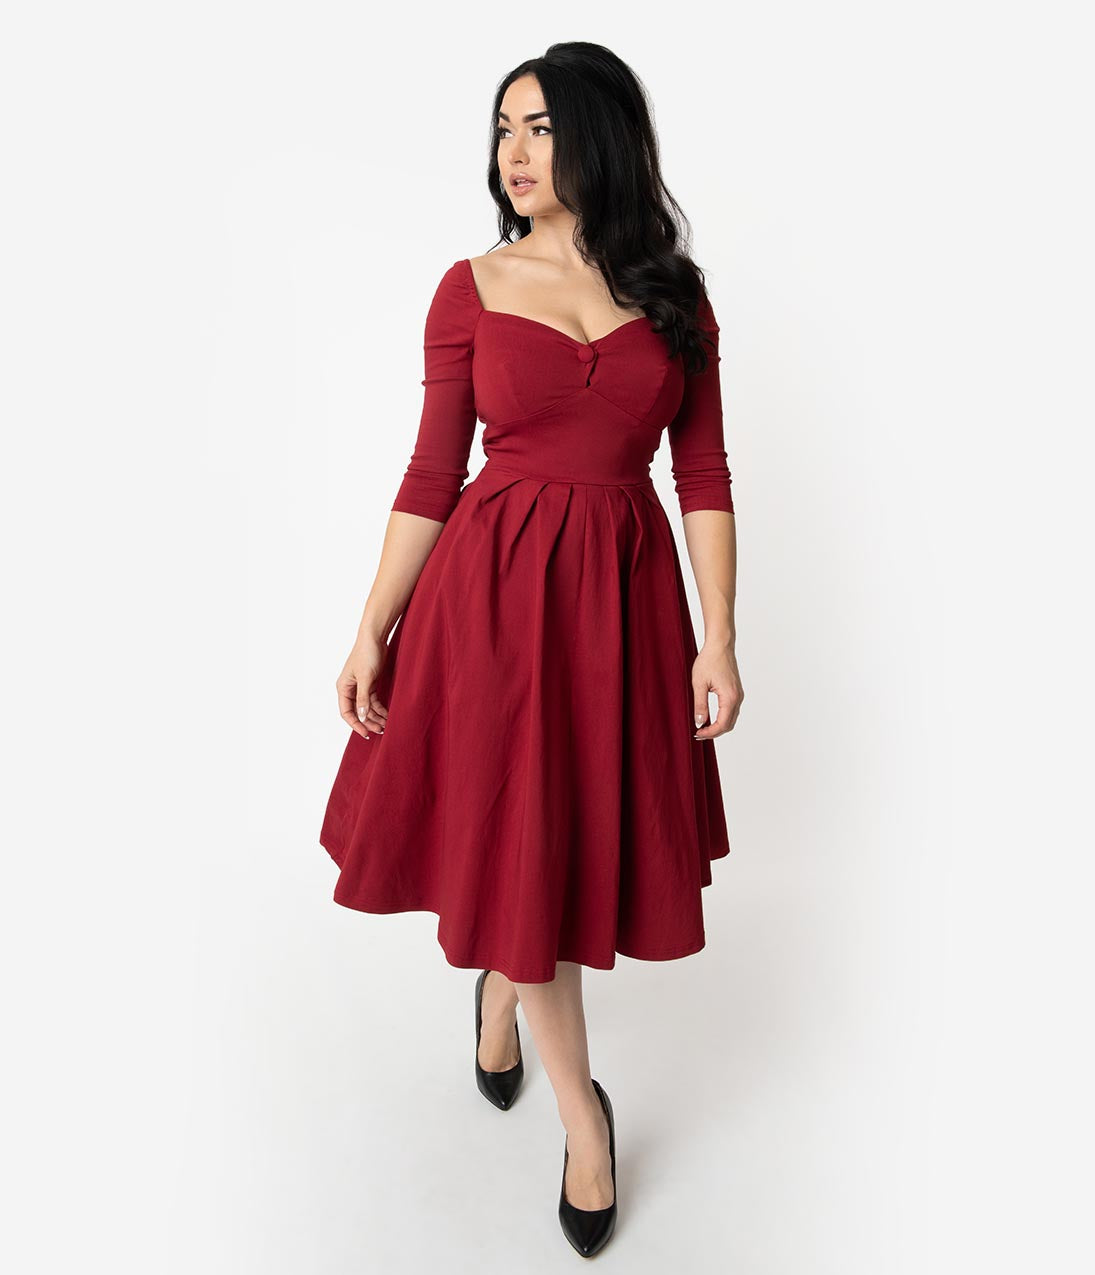 Vintage Christmas Gift Ideas for Women Unique Vintage 1950S Deep Red Bengaline Sweetheart Lamar Swing Dress $98.00 AT vintagedancer.com